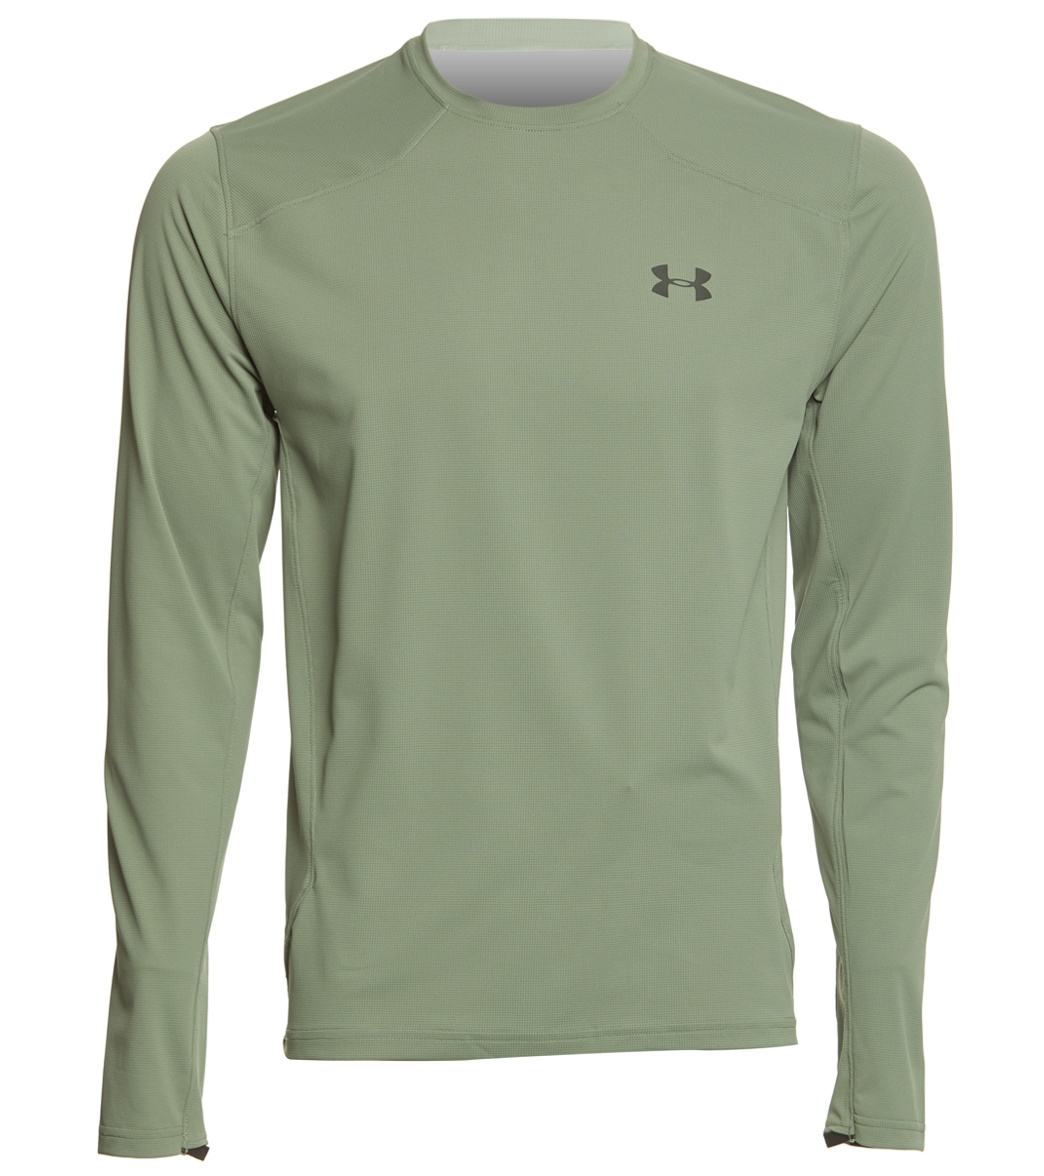 95cc12c91e4 Under Armour Men s UA Sunblock Long Sleeve Shirt at SwimOutlet.com - Free  Shipping